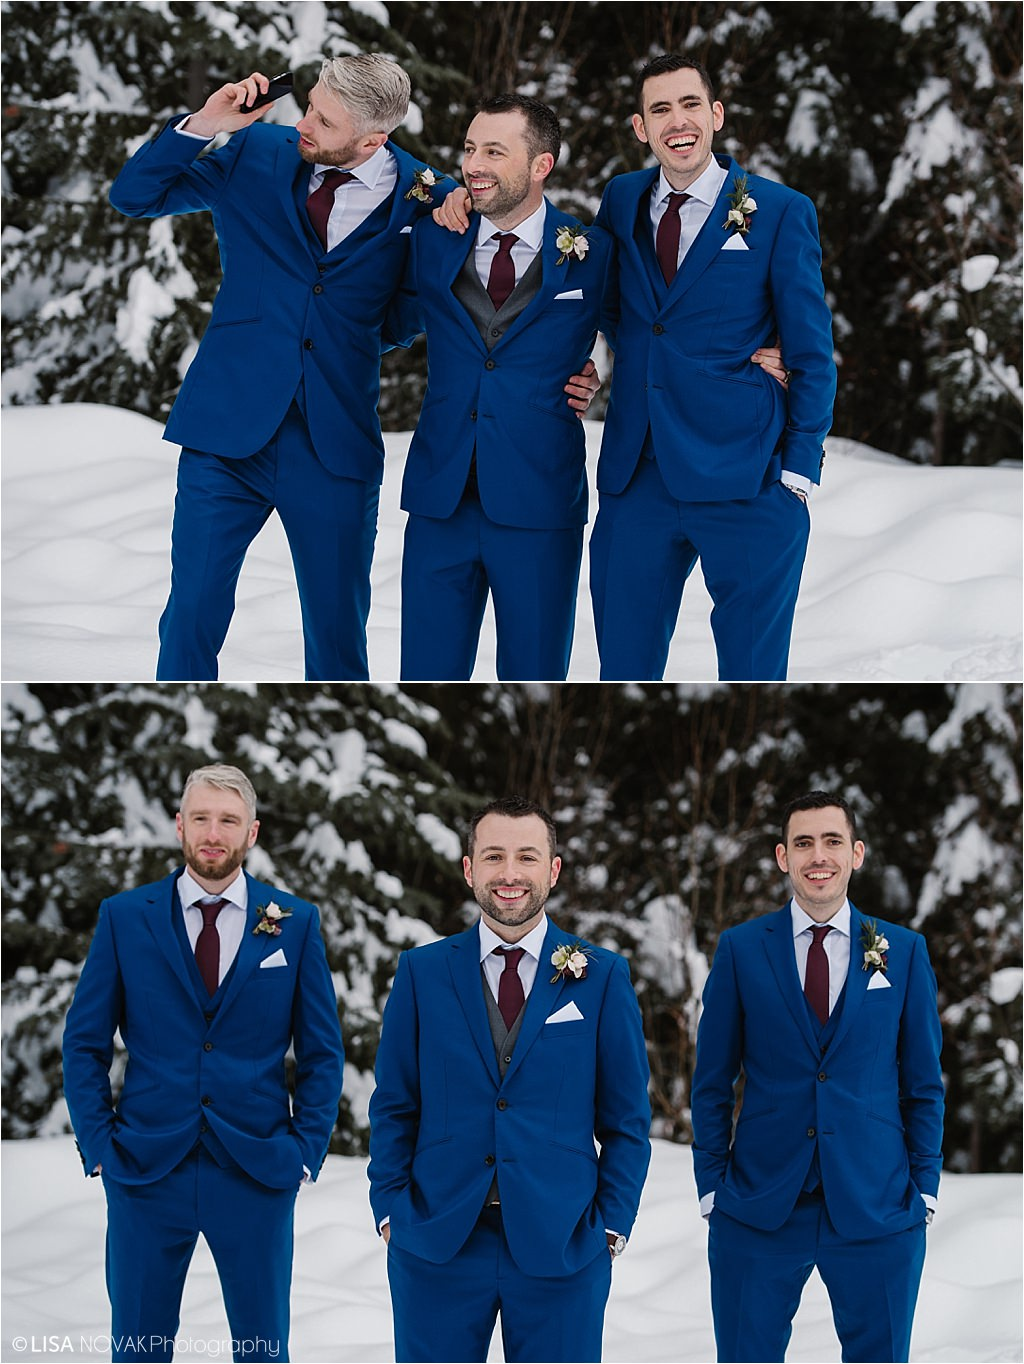 Destination winter wedding Sun Peaks Resort groomsman pose ideas blue suits snowy